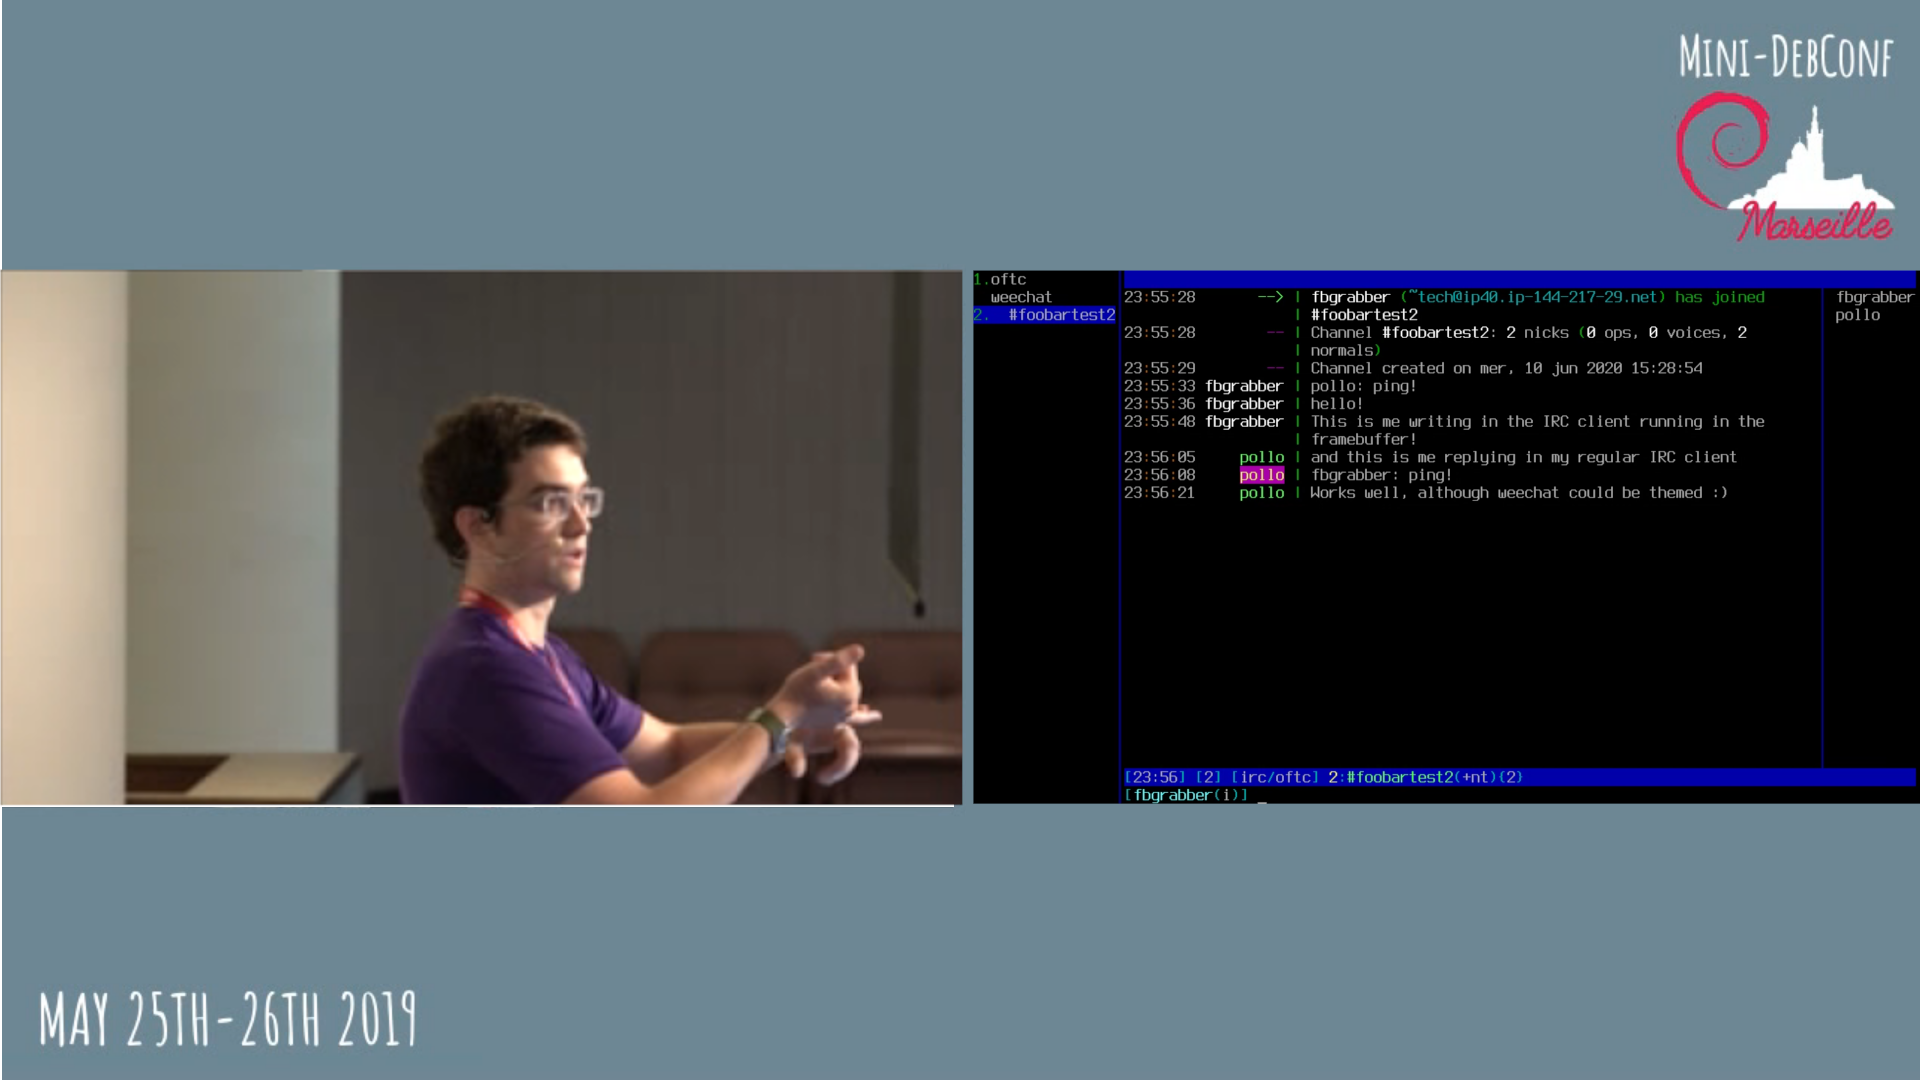 A mockup of a side-by-side voctogui window with someone on the left and a terminal running weechat on the right